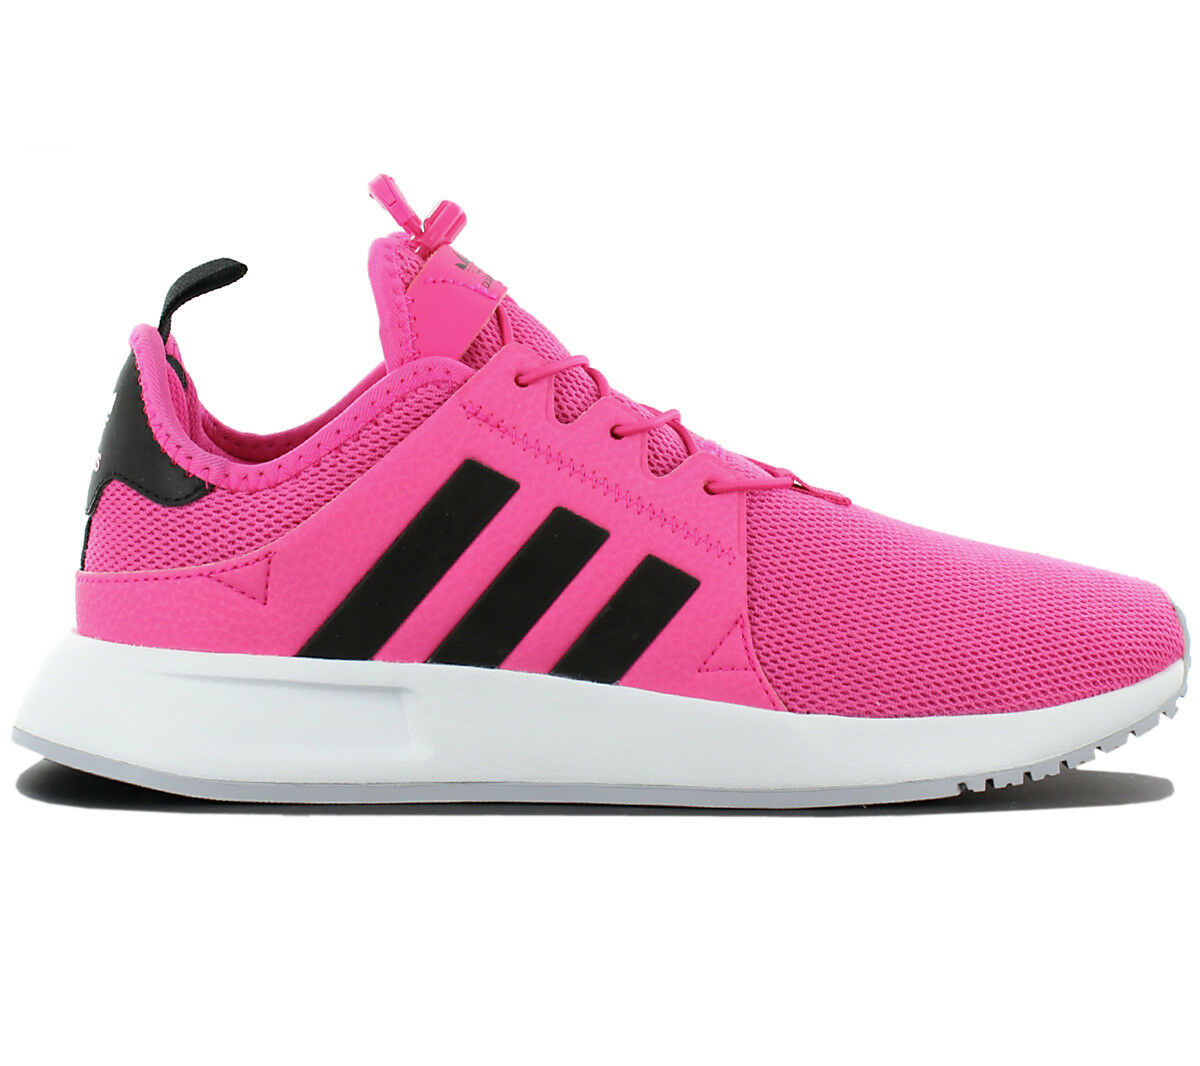 Adidas Originals x Plr Ladies Sneaker shoes pink Casual Trainers BB1108 New